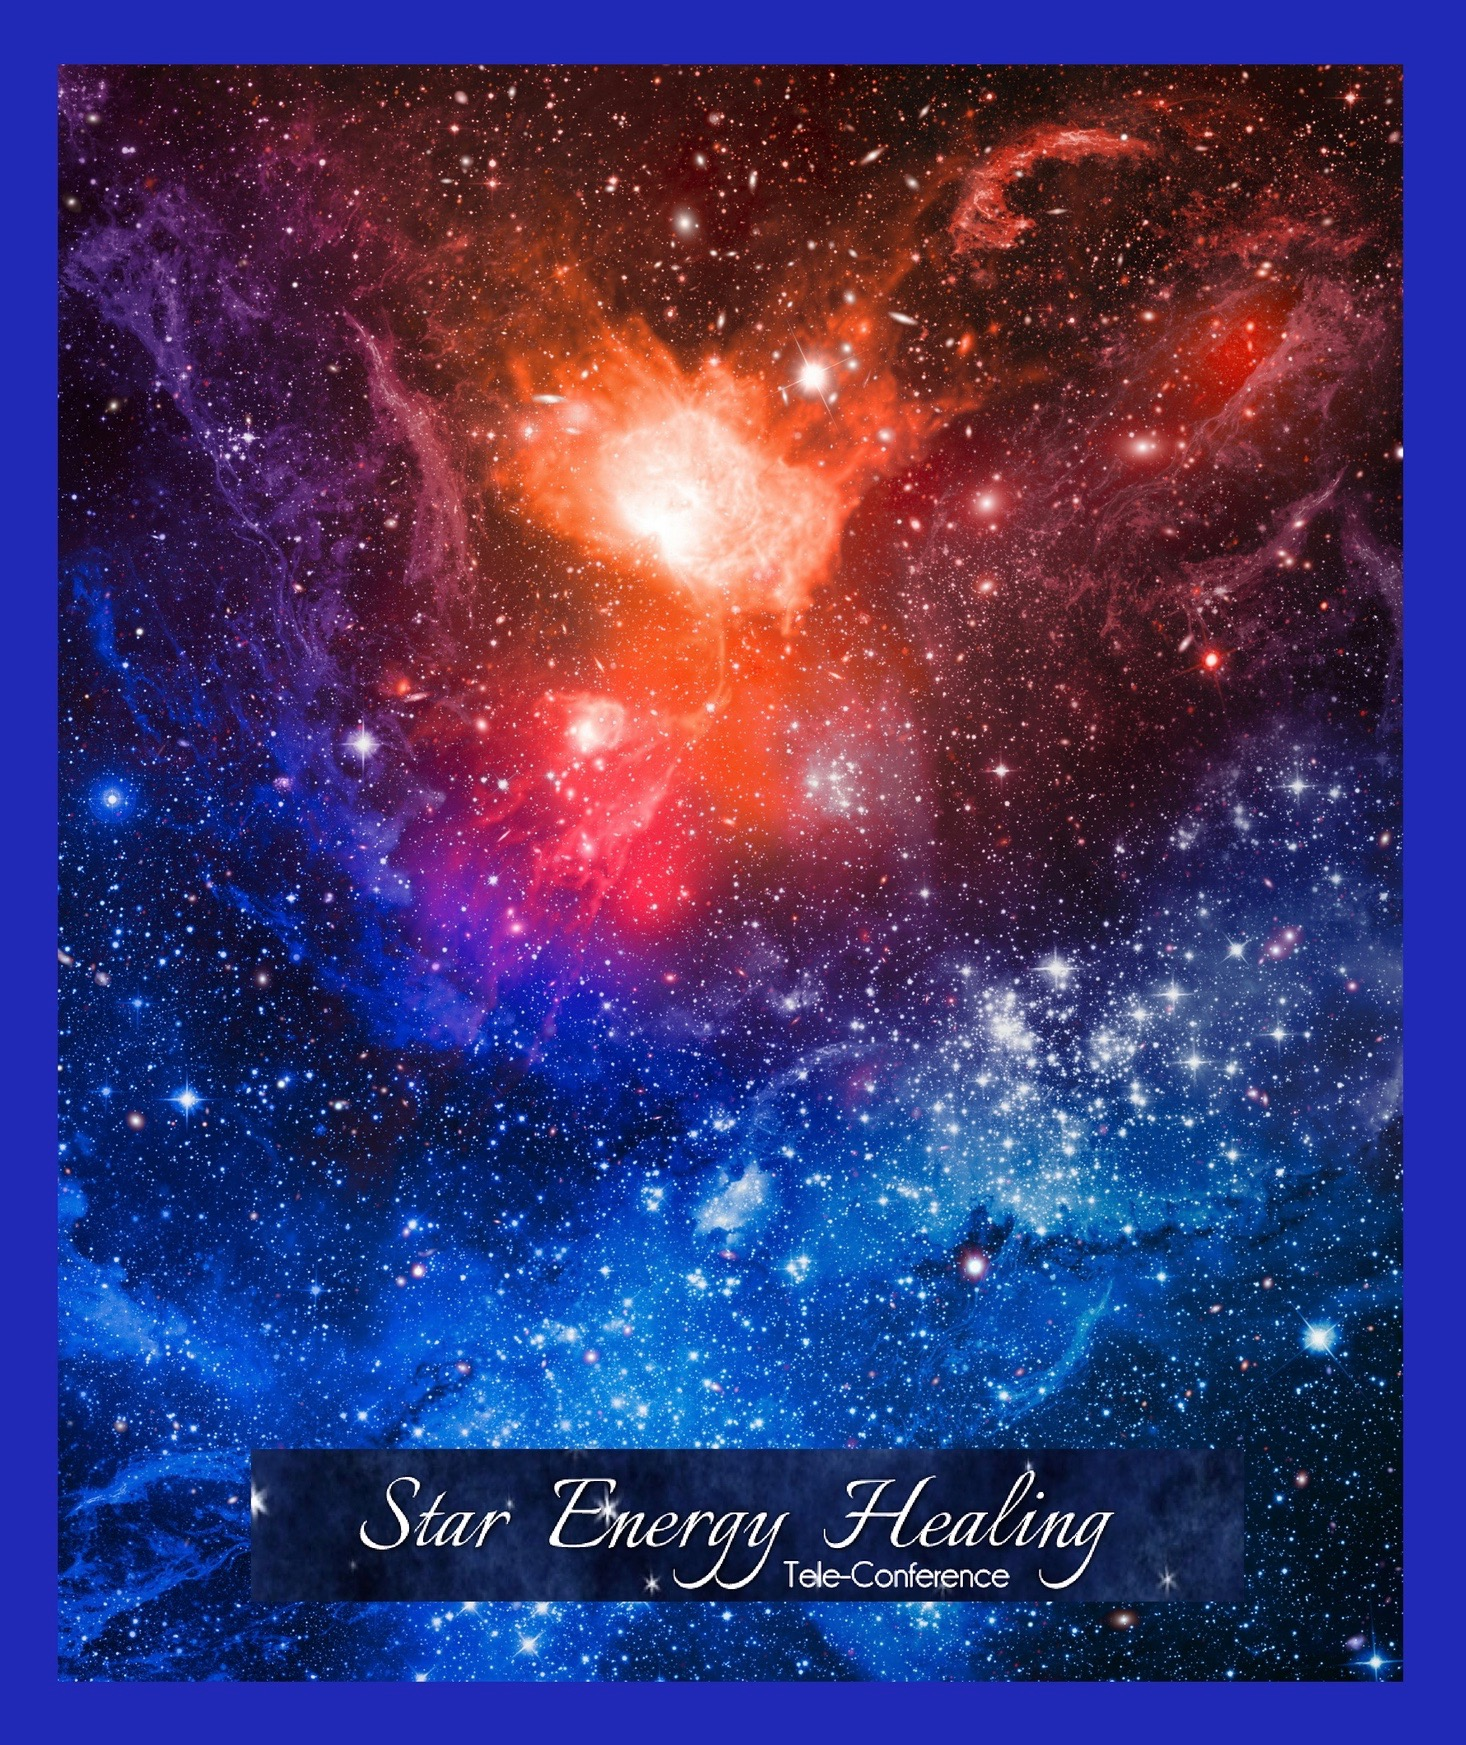 An Introduction to the Star Energy Healing Tele-Conference